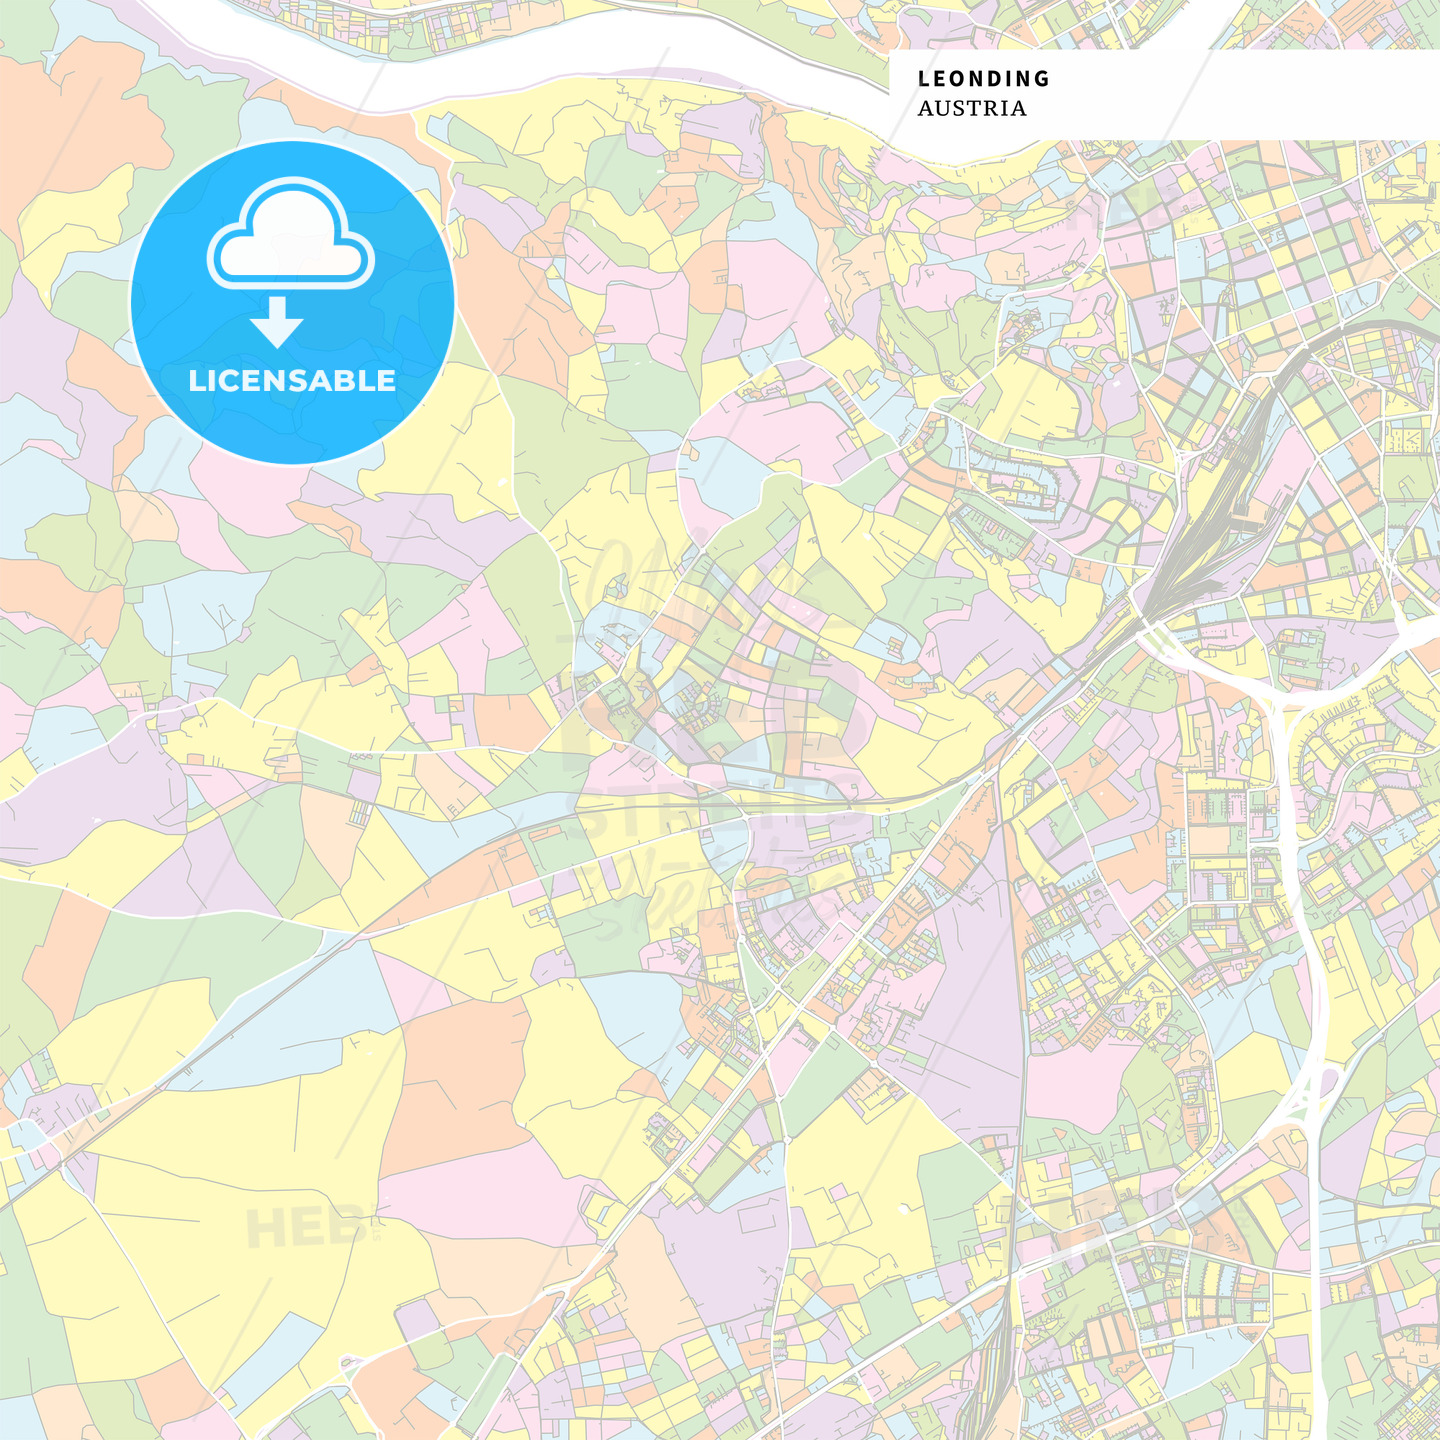 Colorful map of Leonding, Austria - HEBSTREITS